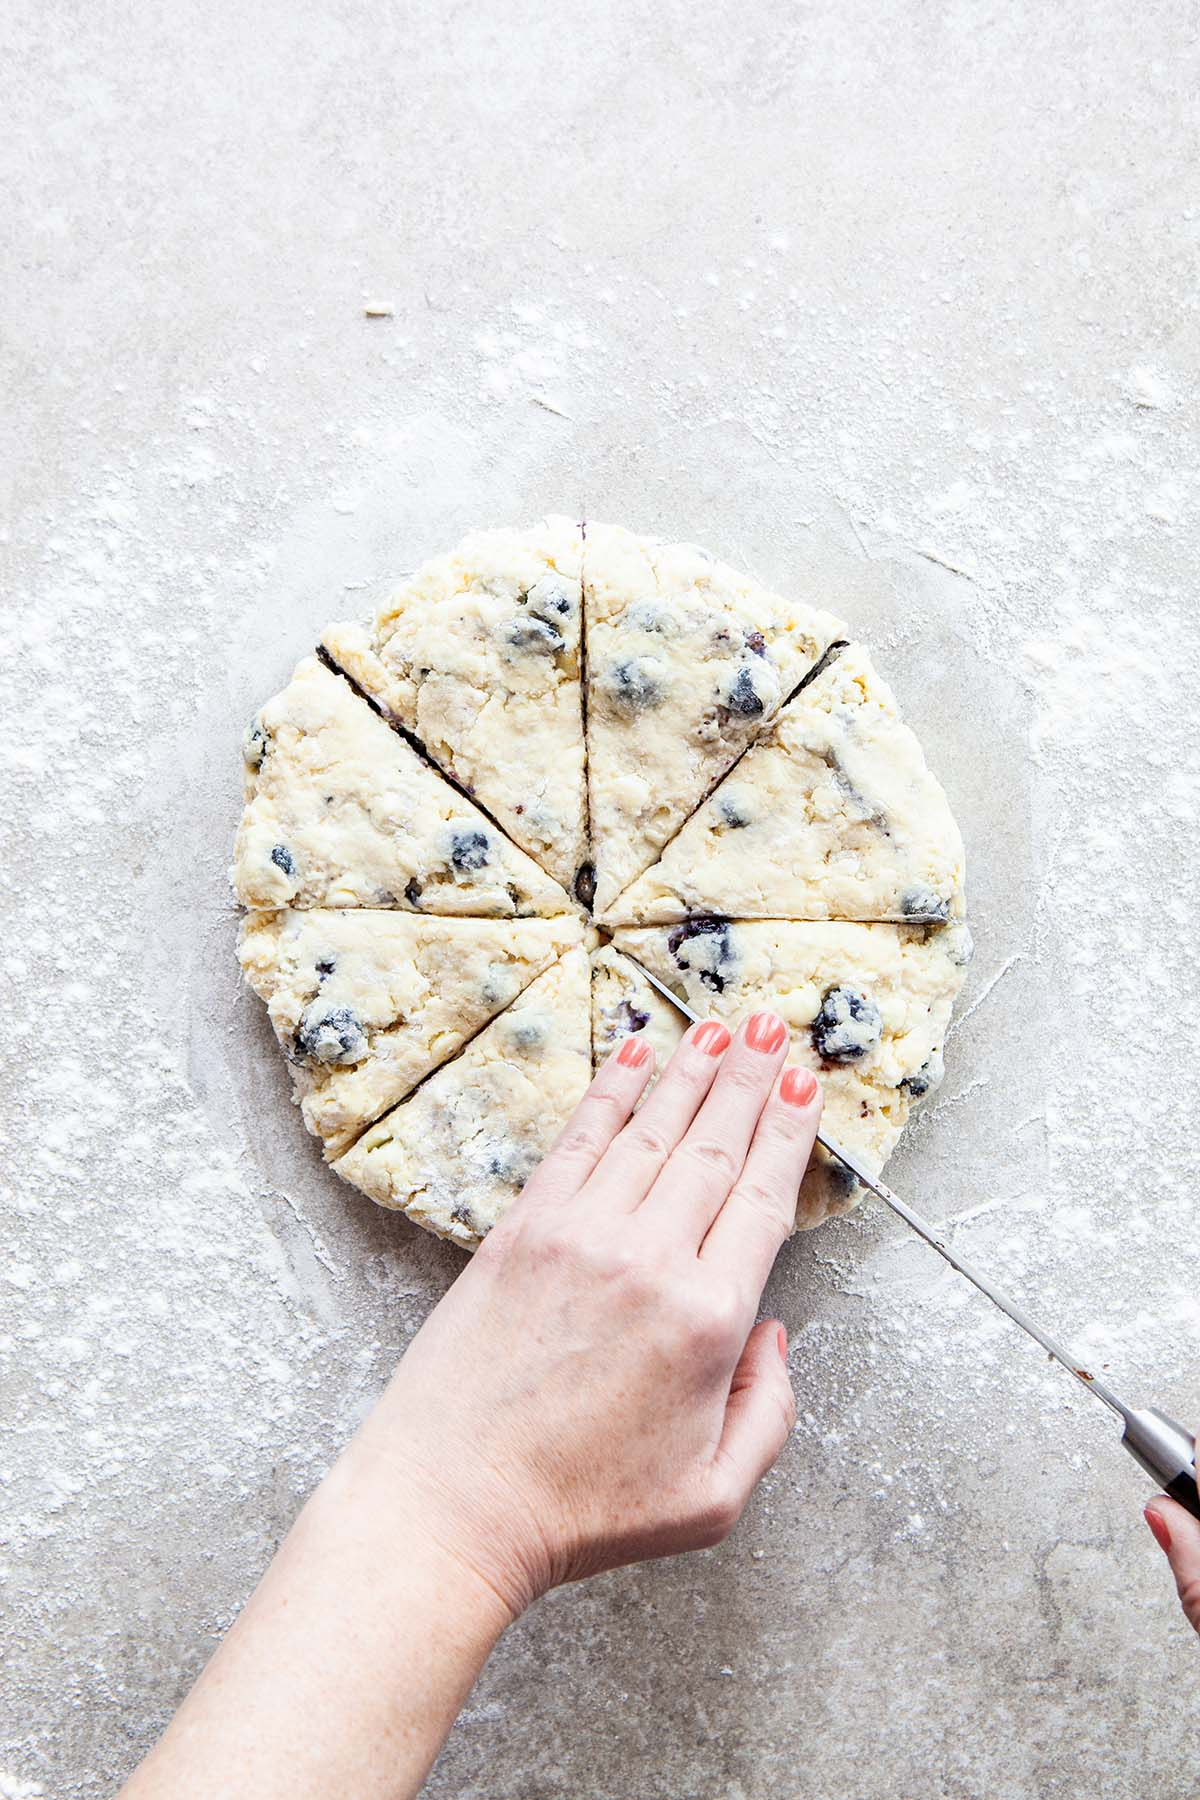 Hands cutting a disc of scone dough into wedges with a long knife on a floured stone surface.